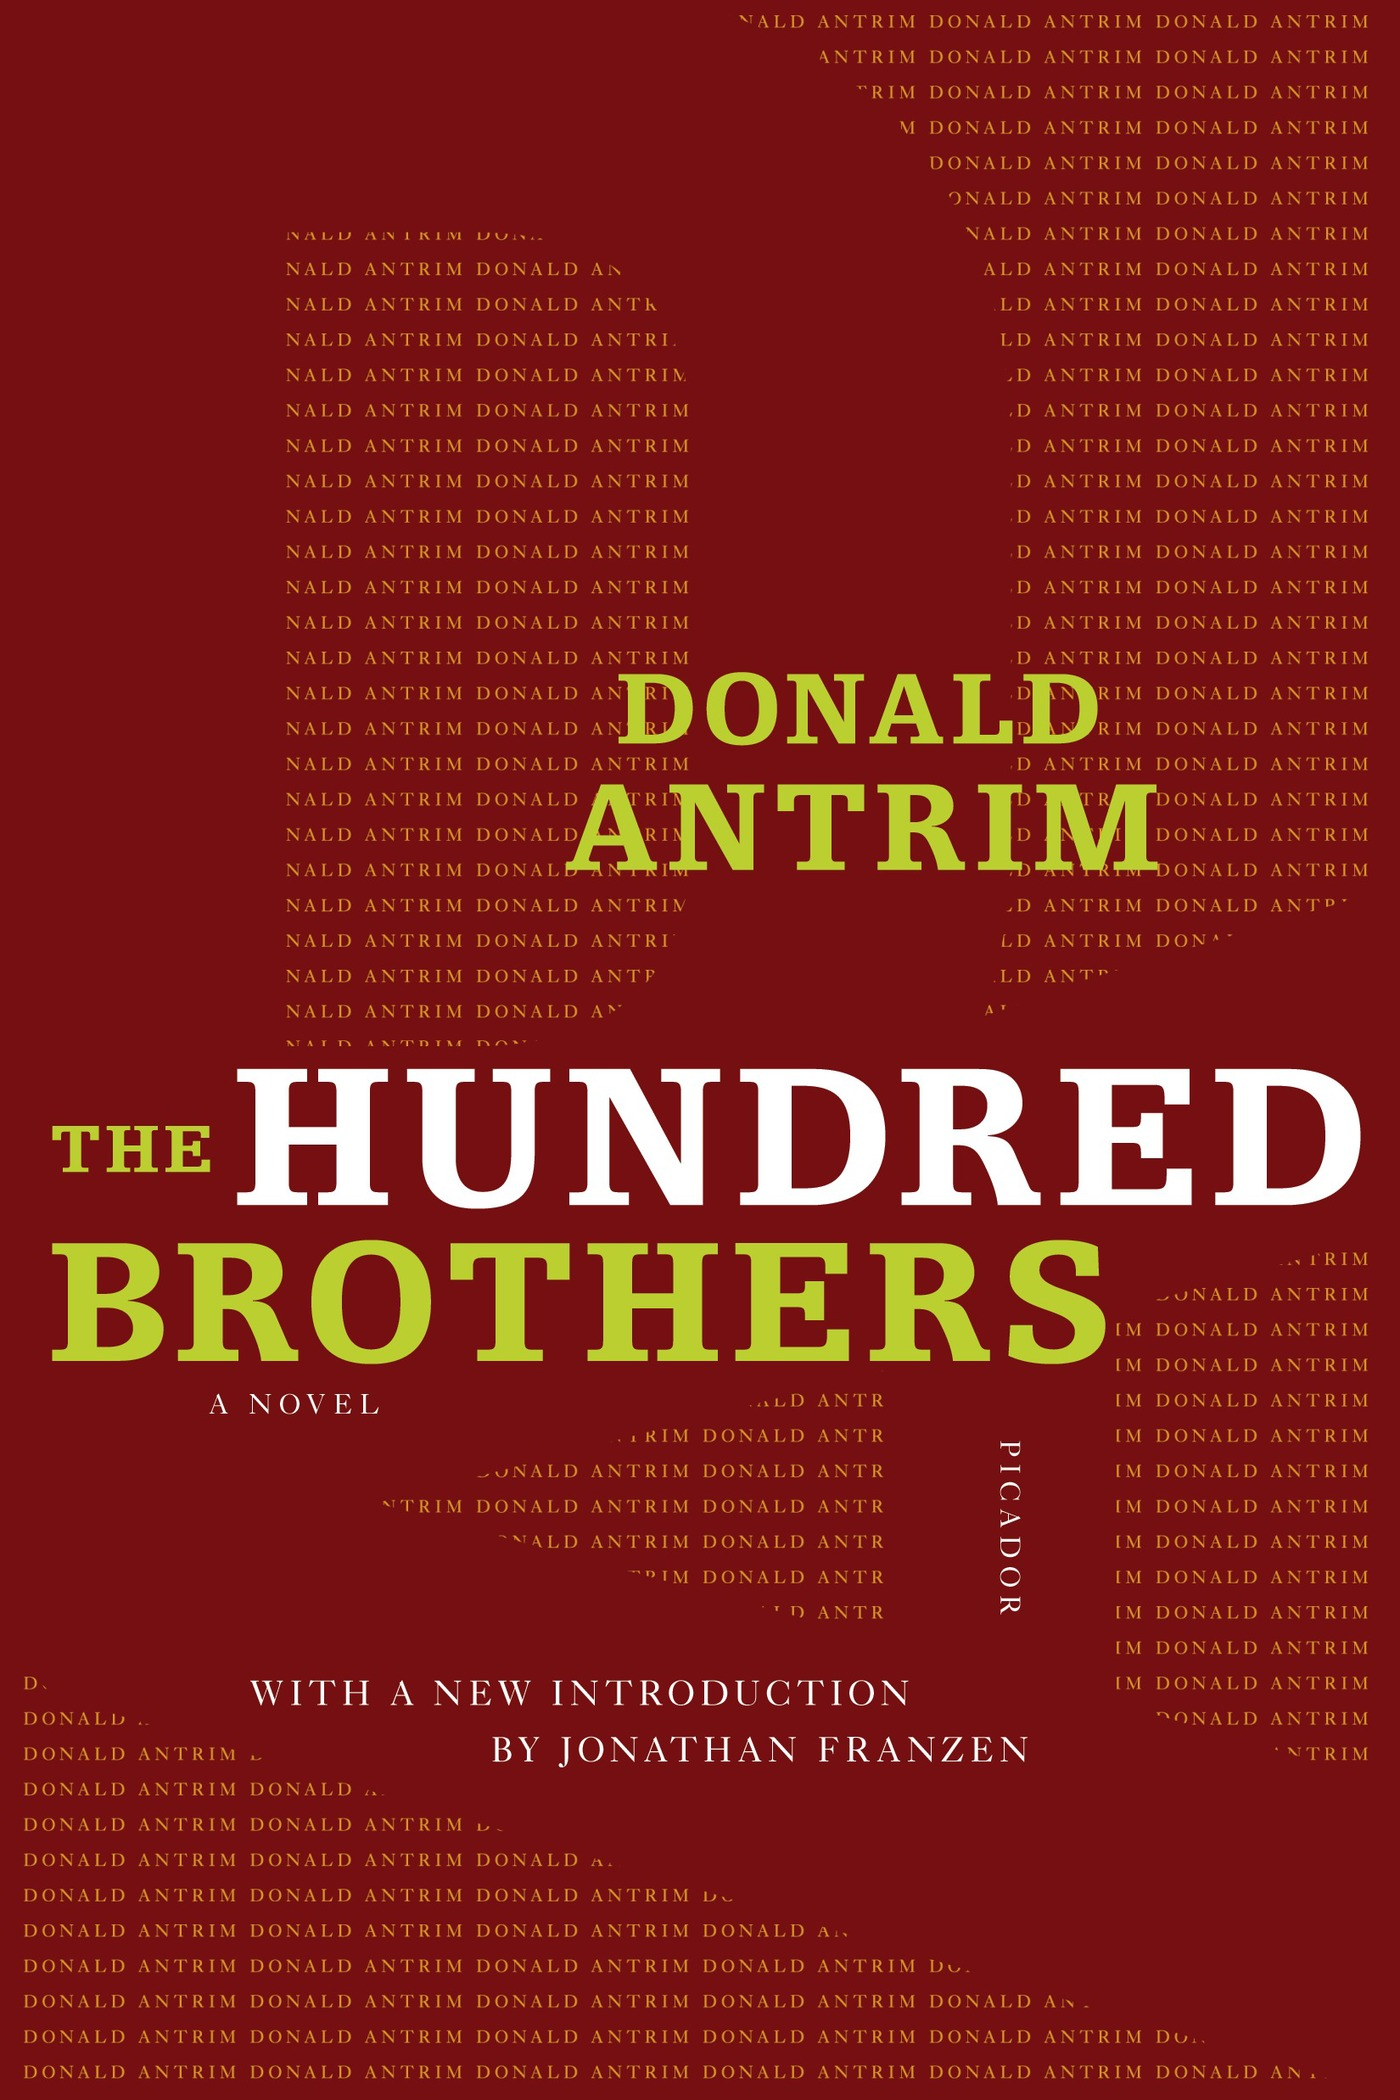 The Hundred Brothers By: Donald Antrim